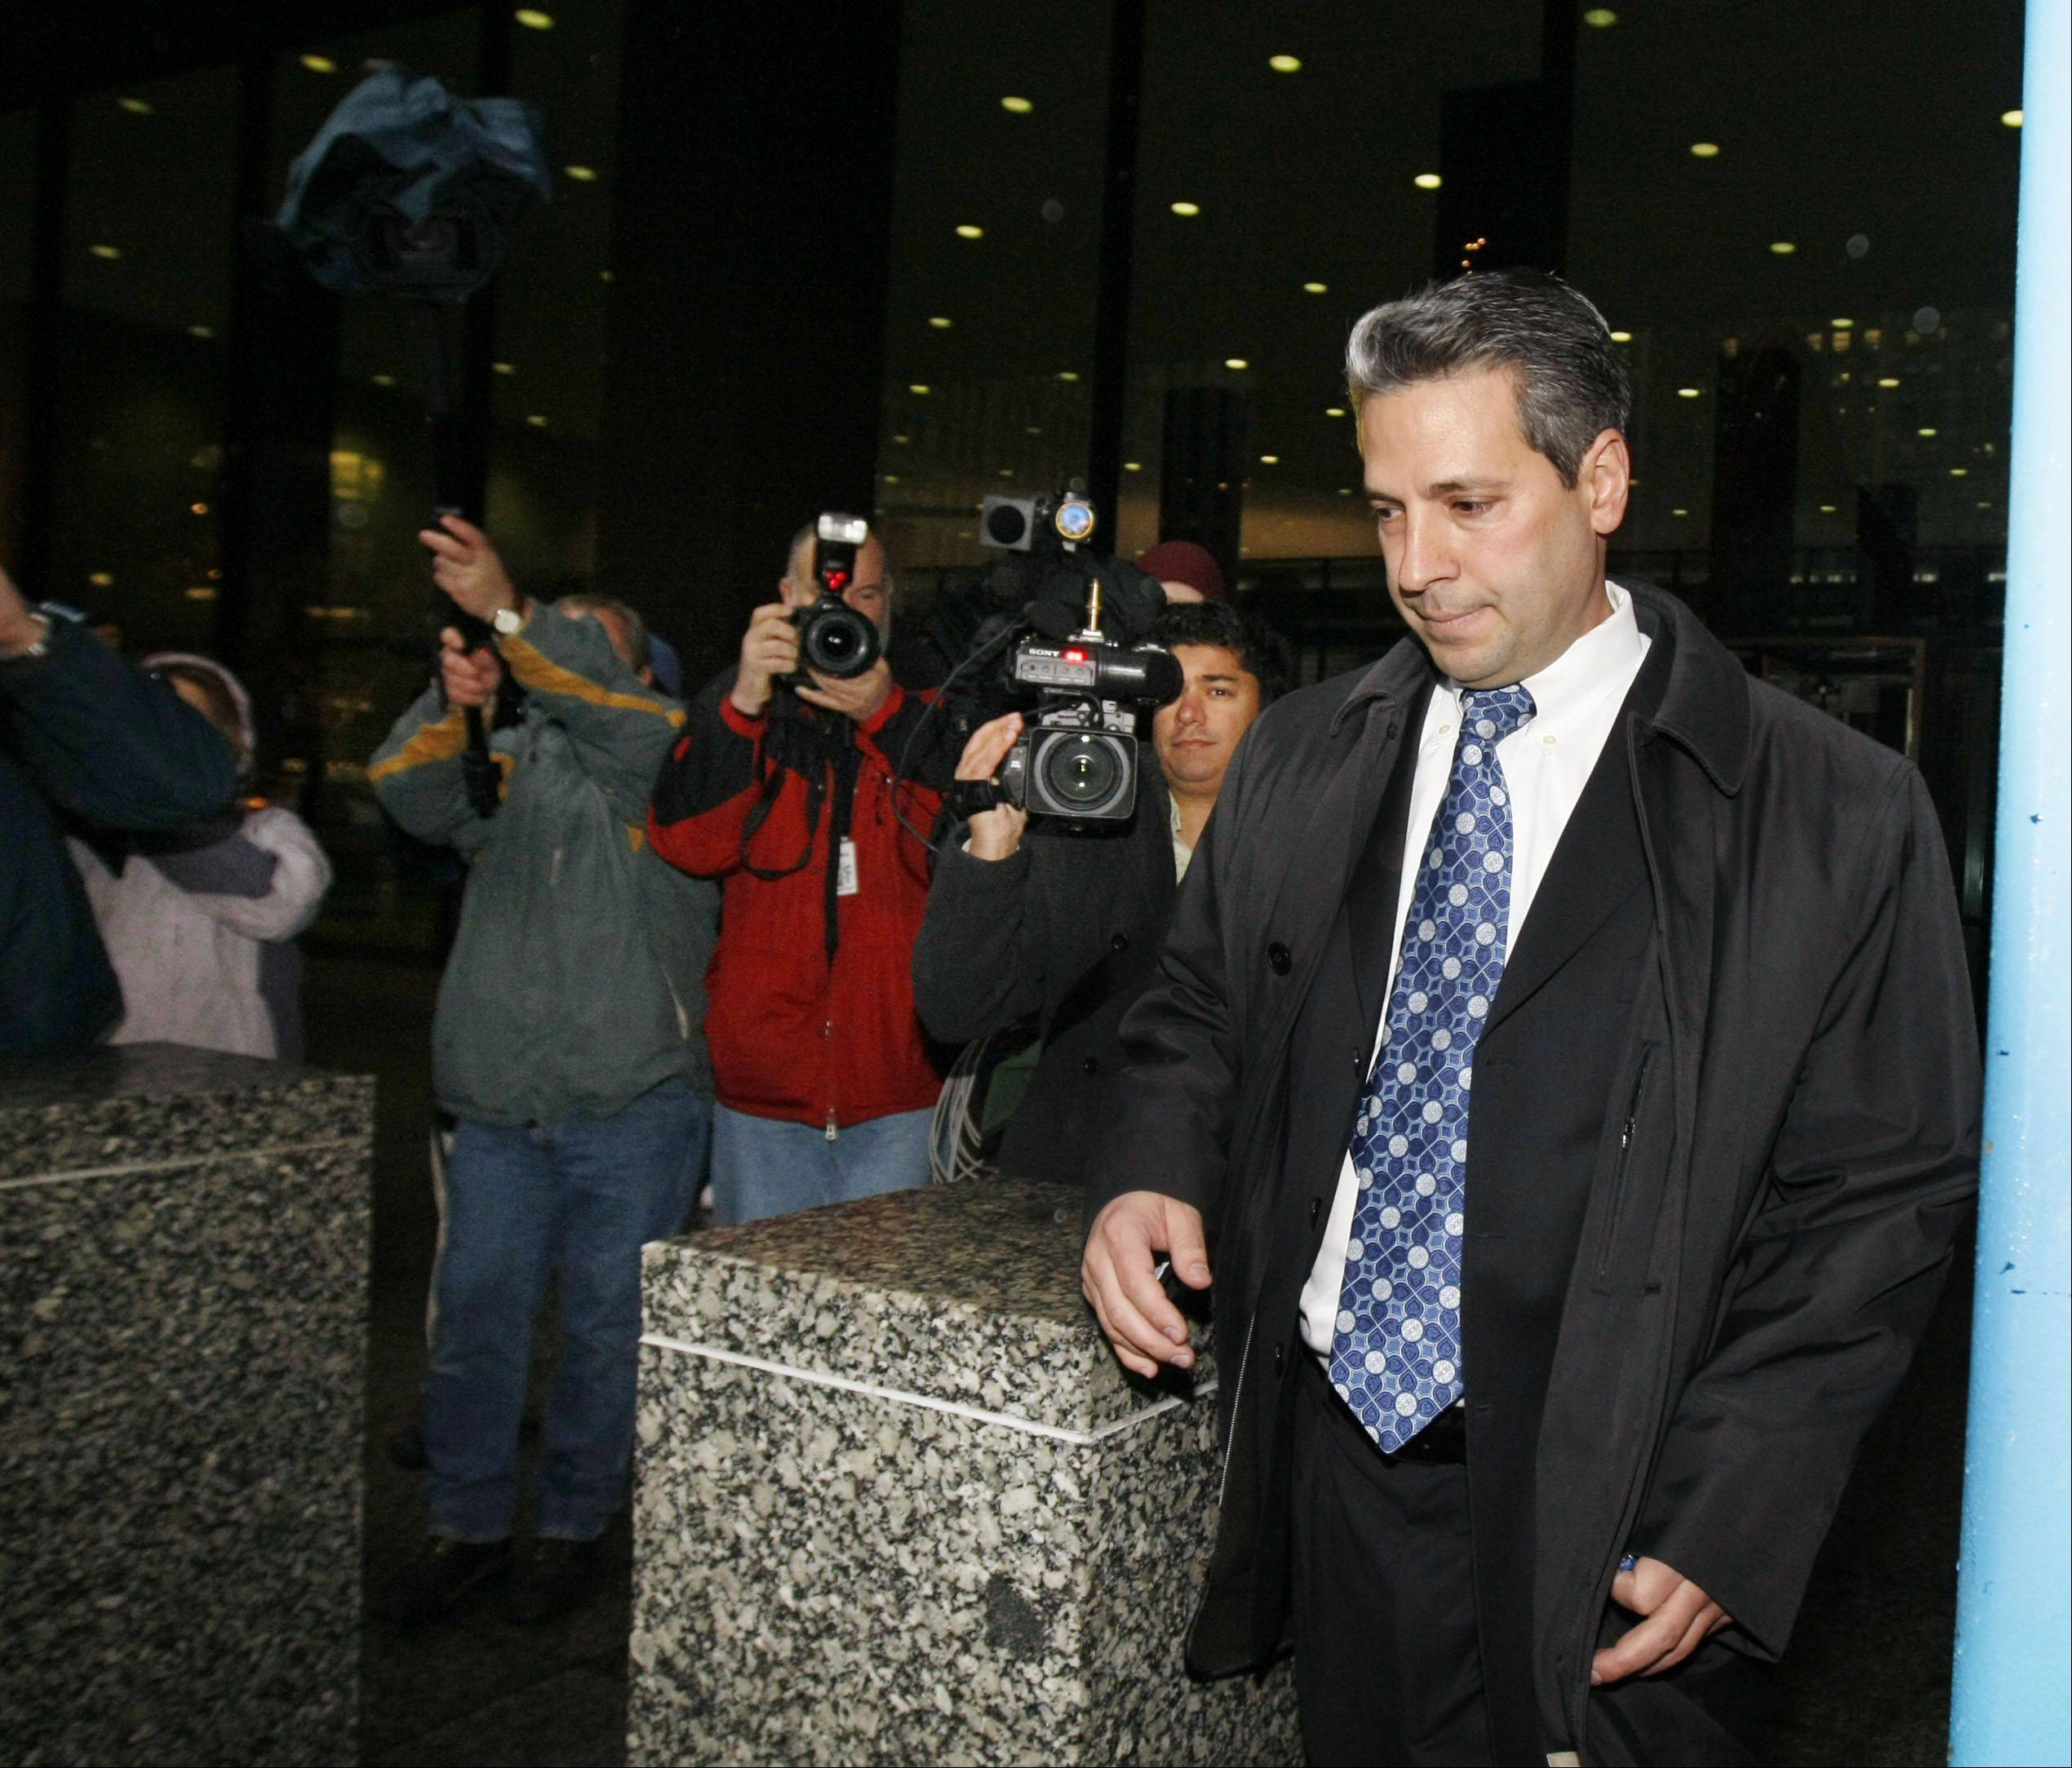 John Harris, right, chief of staff for Illinois Governor Rod Blagojevich, leaves the Dirksen Federal Building in Chicago Tuesday, Dec. 9, 2008 after he was arrested on corruption charges.